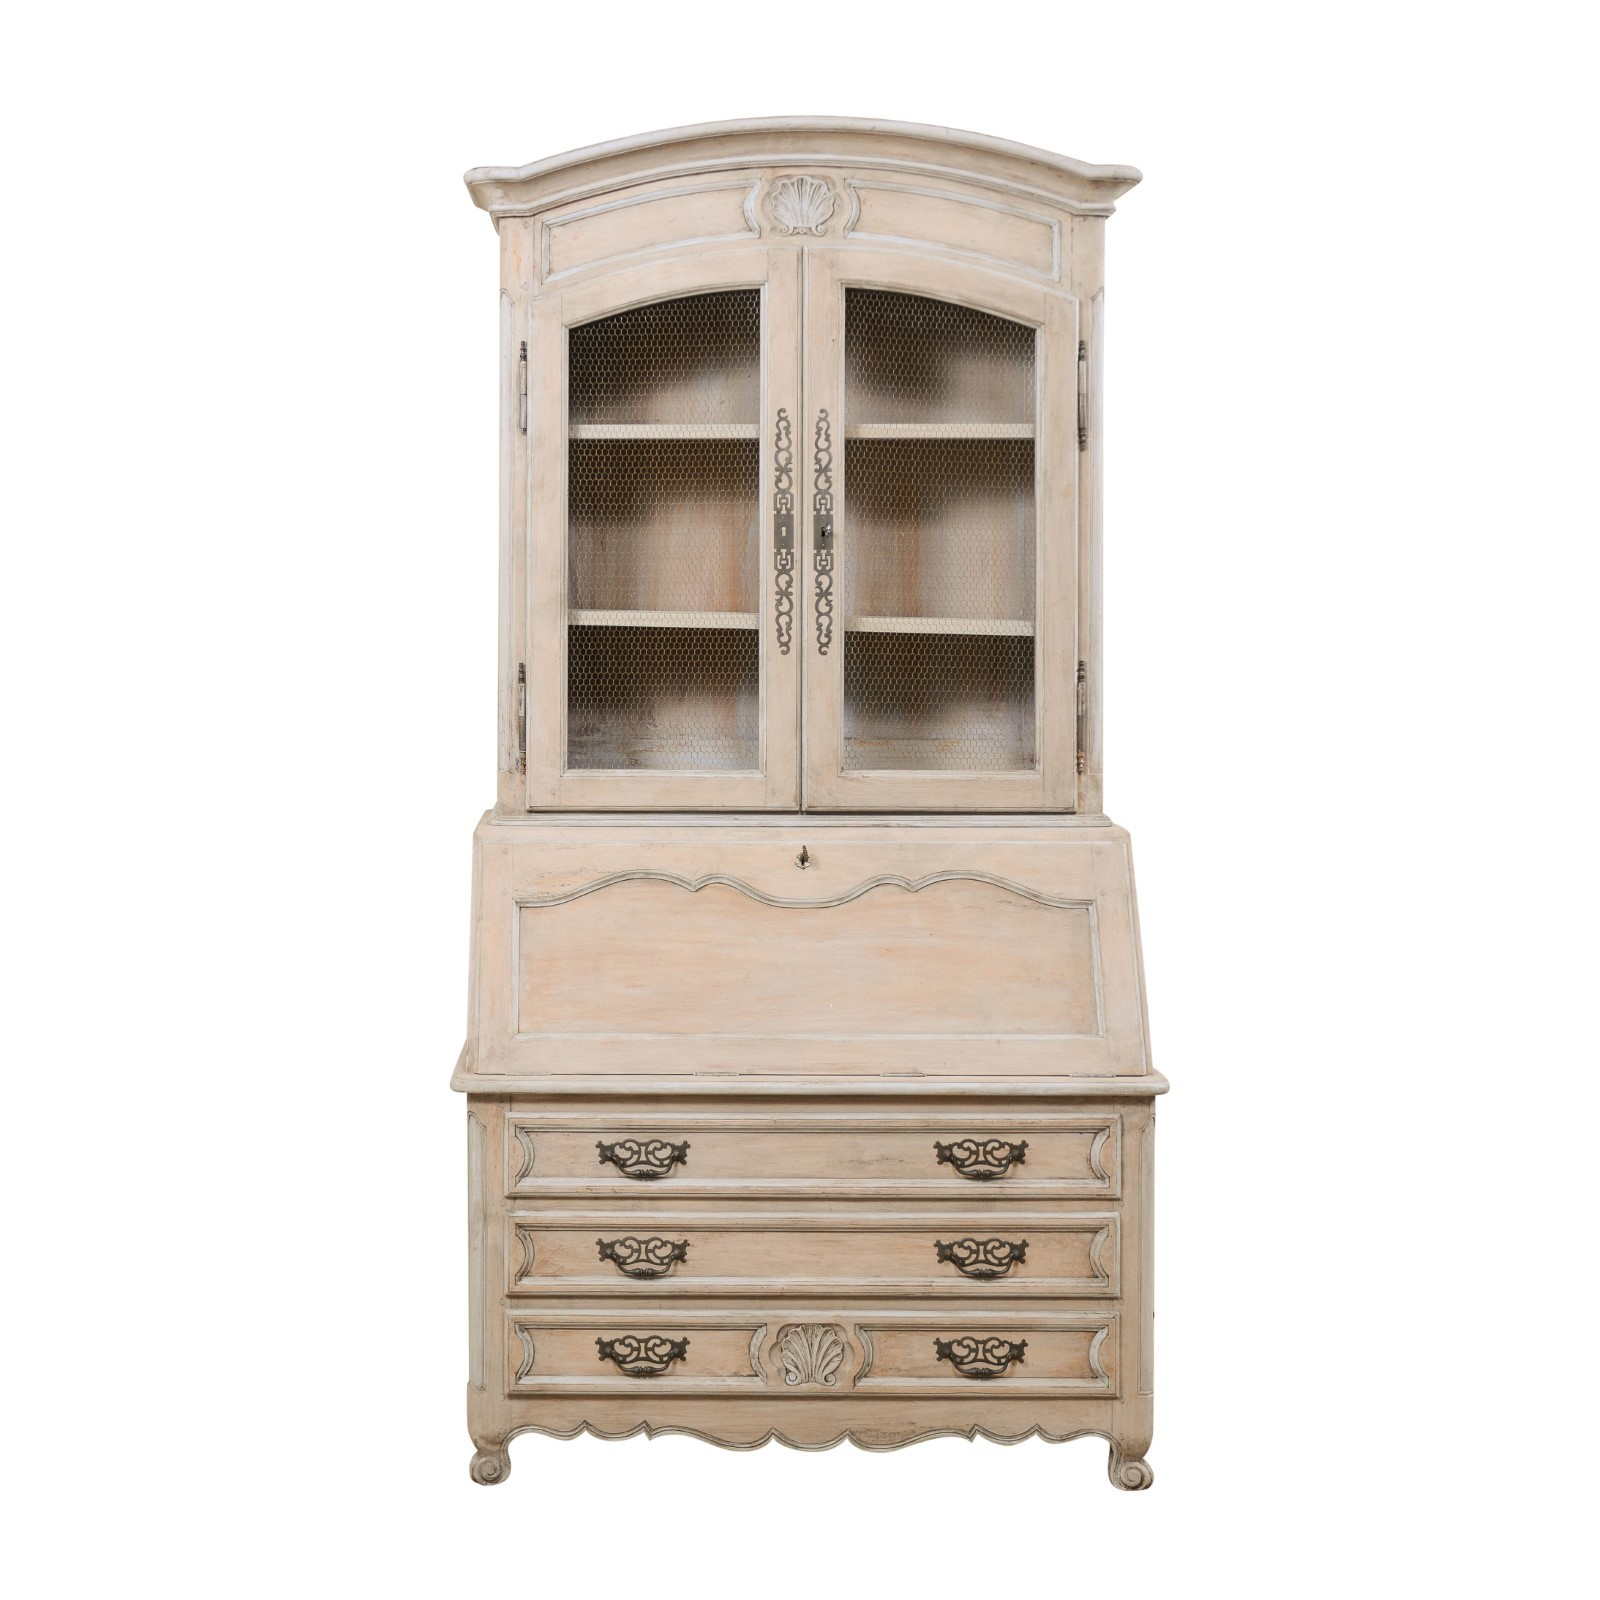 A French Vintage Secretary Curio Cabinet